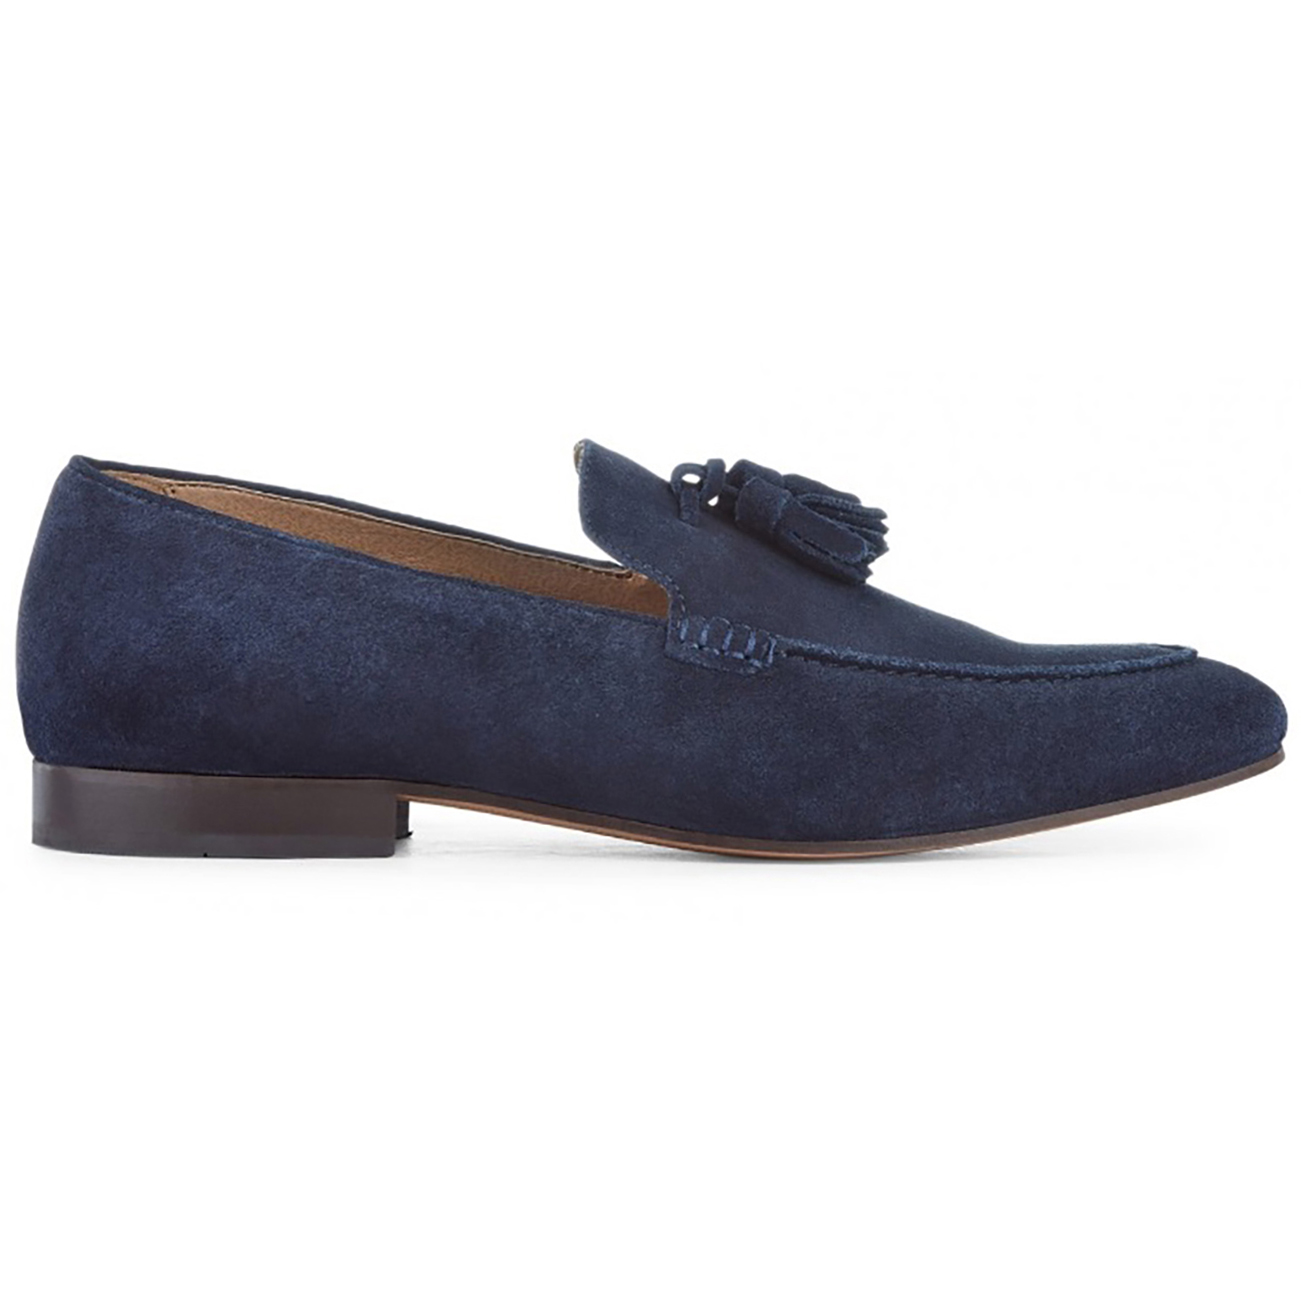 H By Hudson Bolton suede